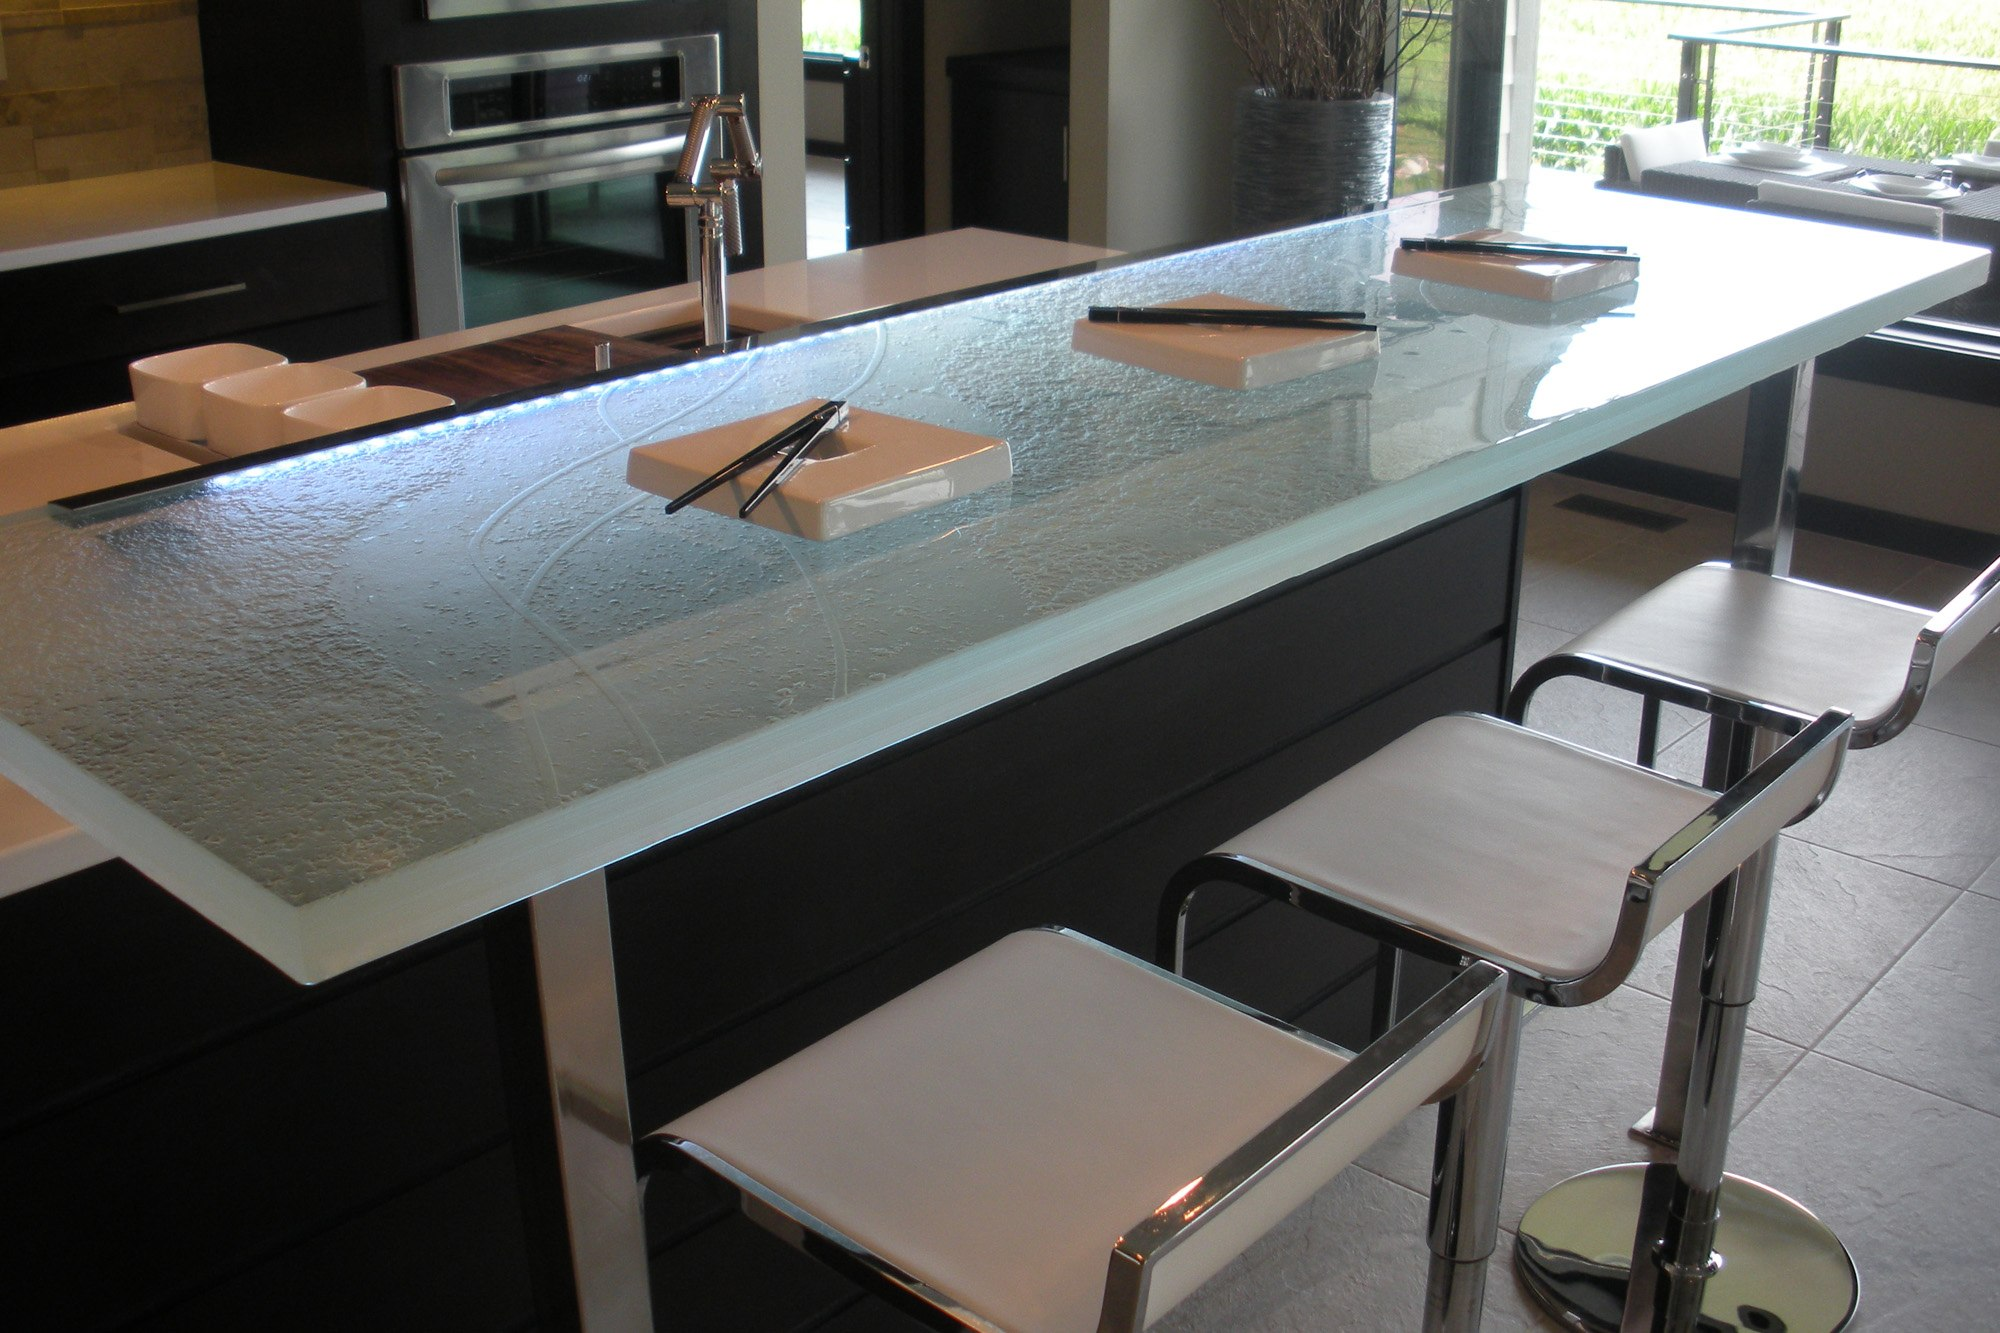 The Ultimate Luxury Touch For Your Kitchen Decor - Glass Countertops homesthetics (12)